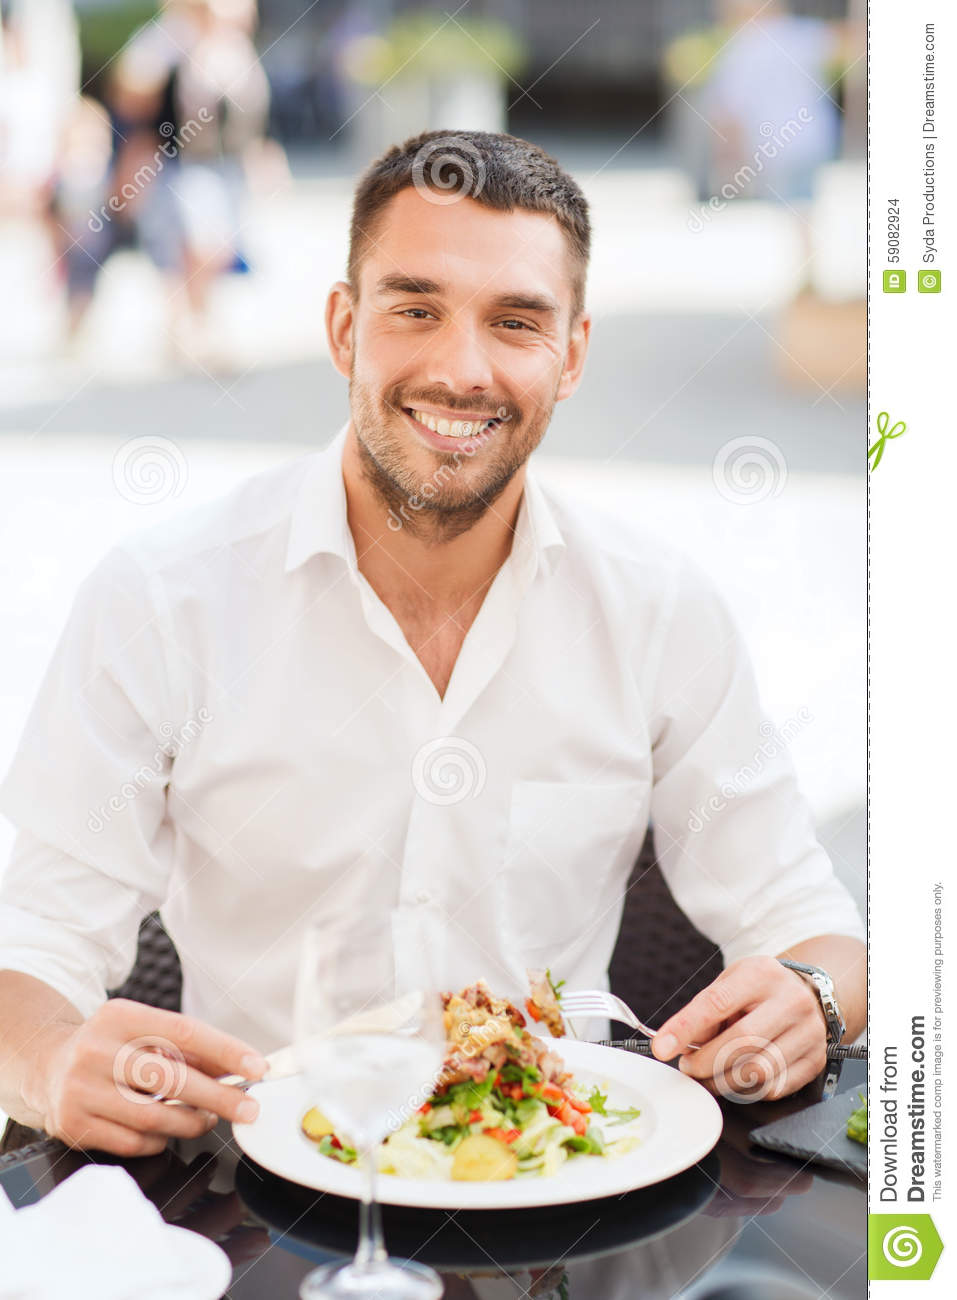 happy-man-eating-salad-dinner-restaurant